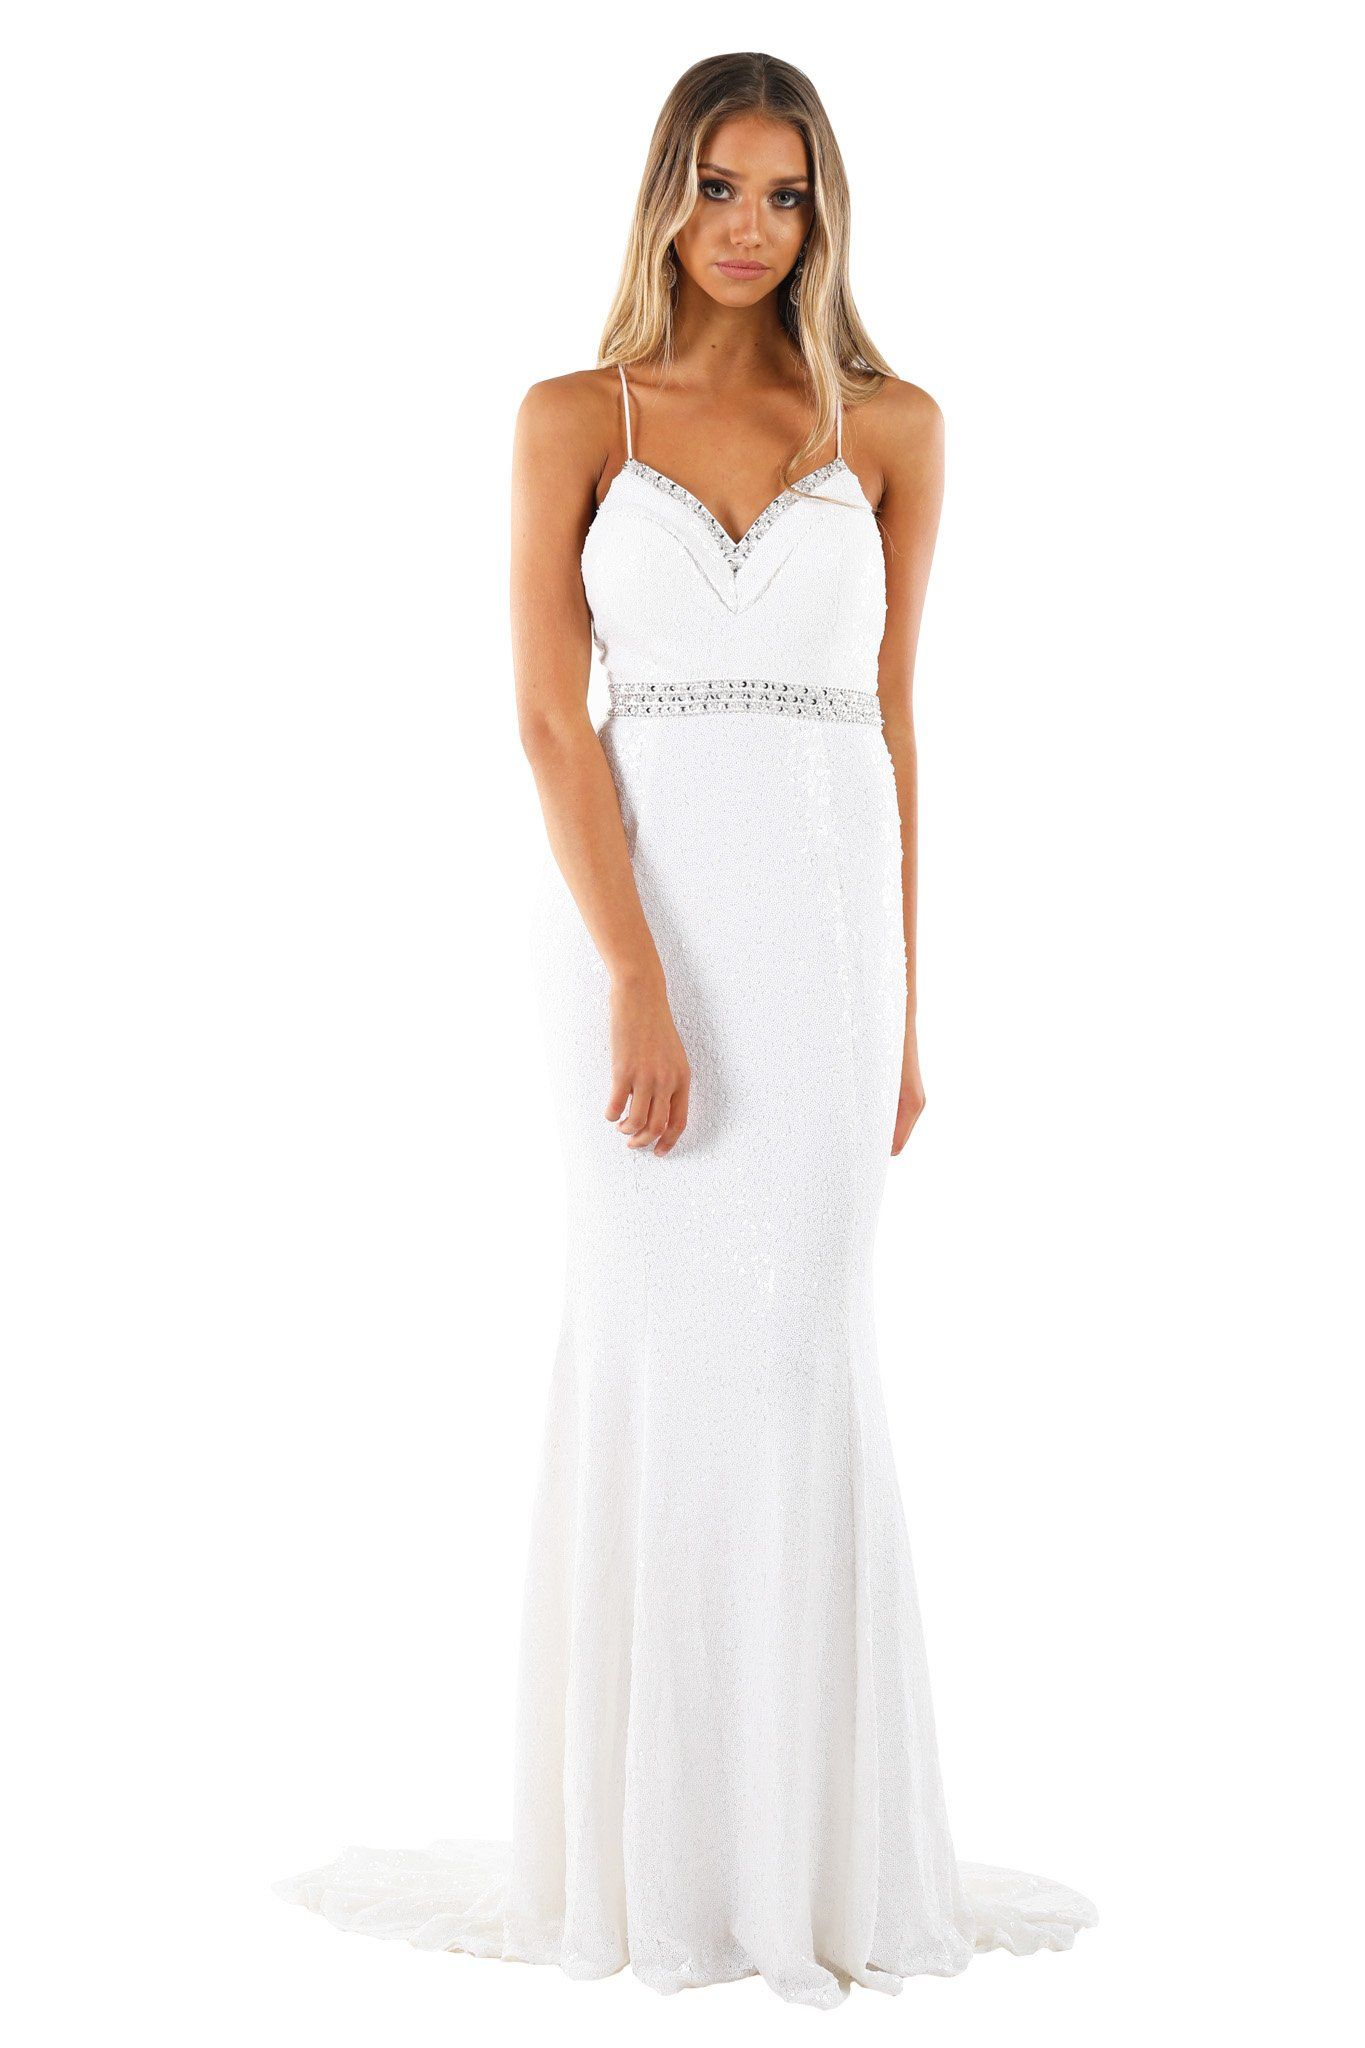 White sleeveless sequin formal long gown with sweetheart embellished neckline, embellished belt, lace-up on open back and a long train